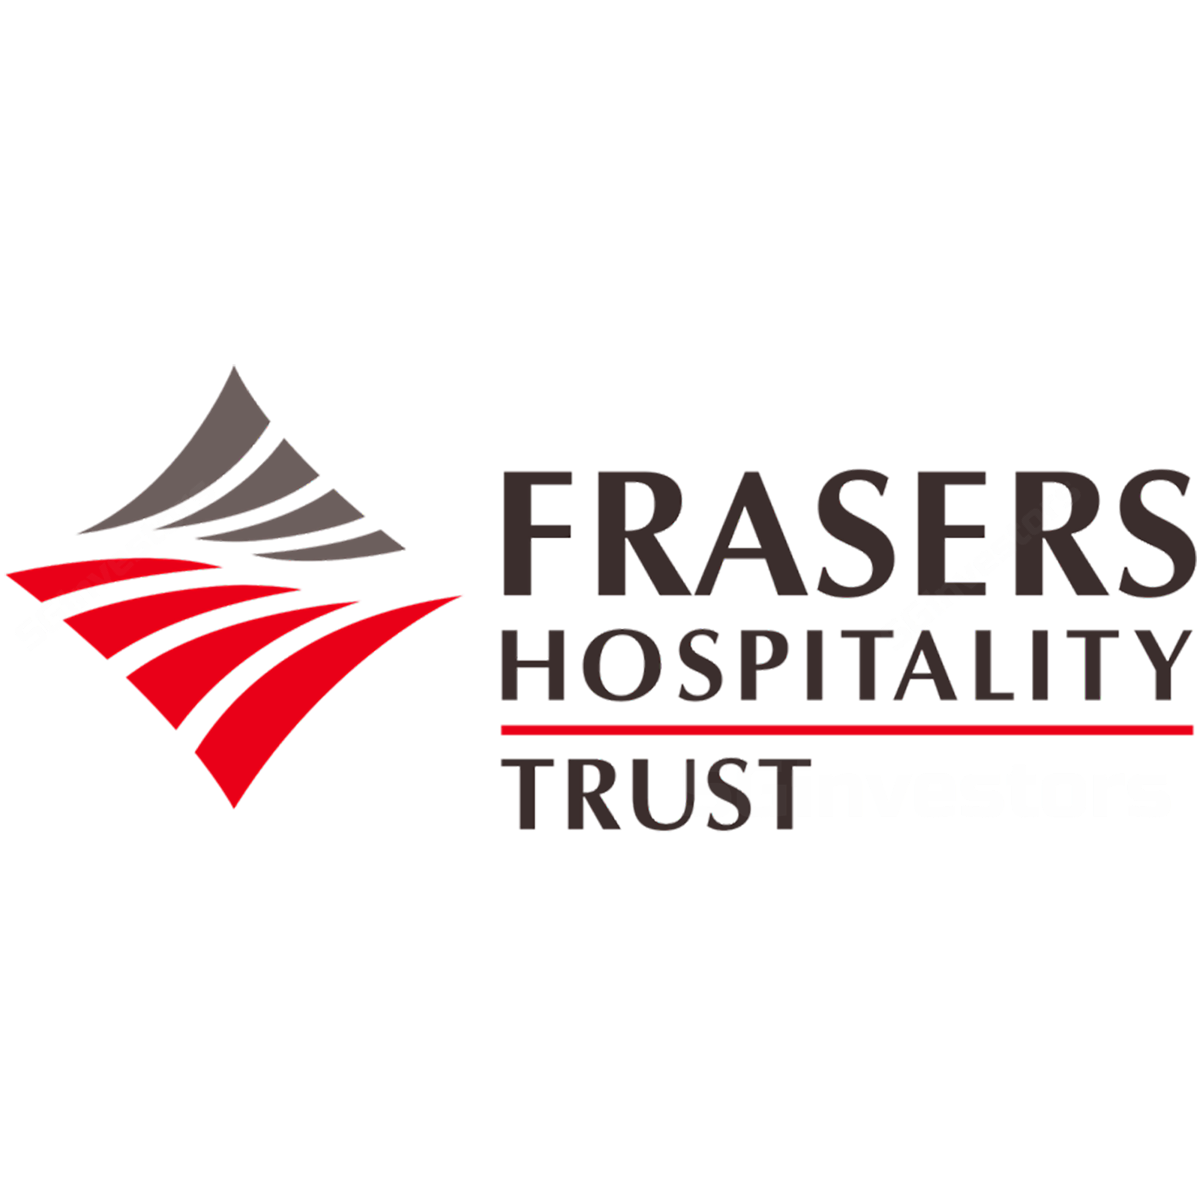 Frasers Hospitality Trust (FHT) - UOB Kay Hian 2017-07-28: 3Q17 Results Of FHT (In Line)